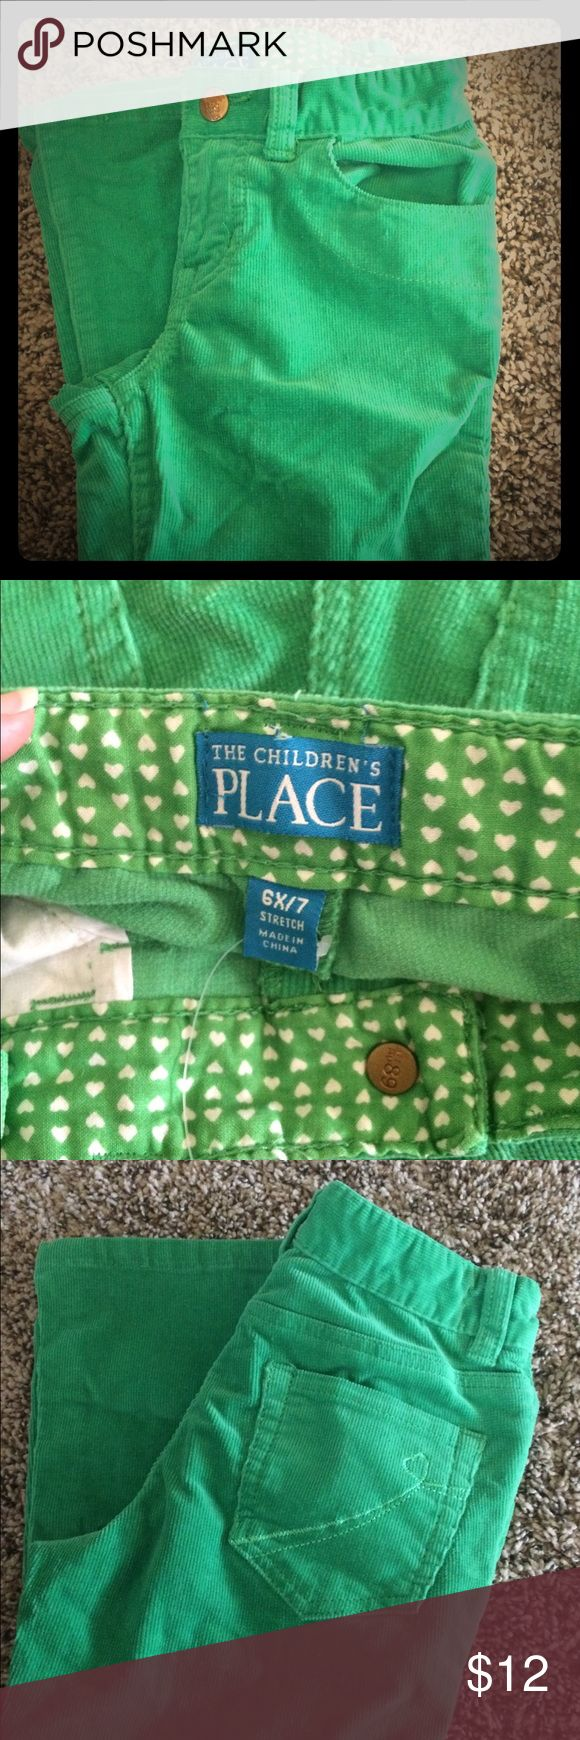 Kelly green corduroy pants. Kelly green corduroy pants. Excellent condition. Children's Place Bottoms Casual